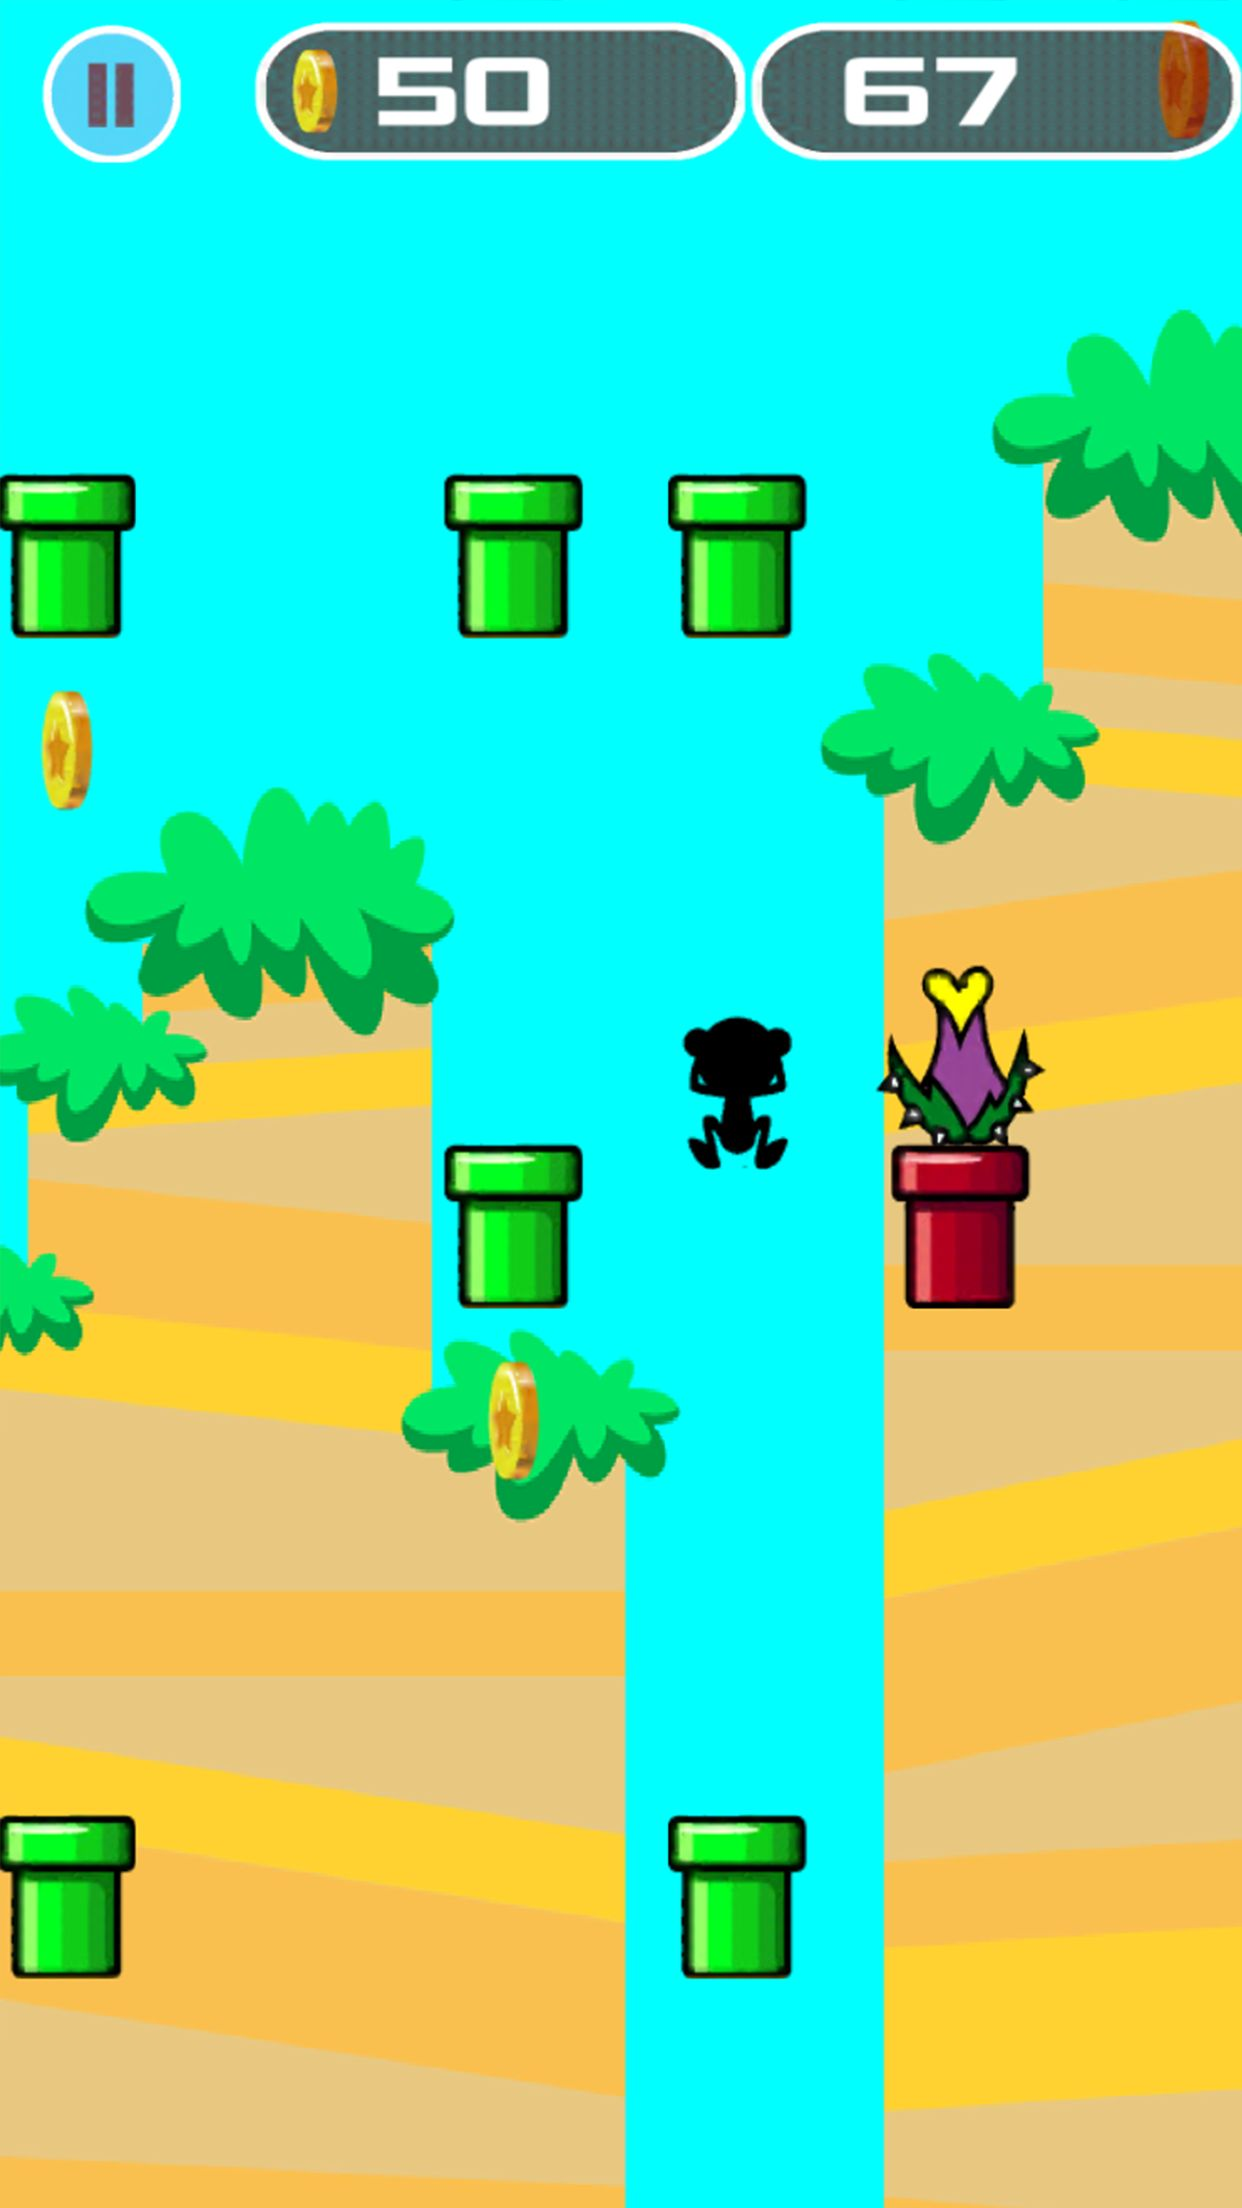 Stickman Bouncing - Complete Unity Project Screenshot 4